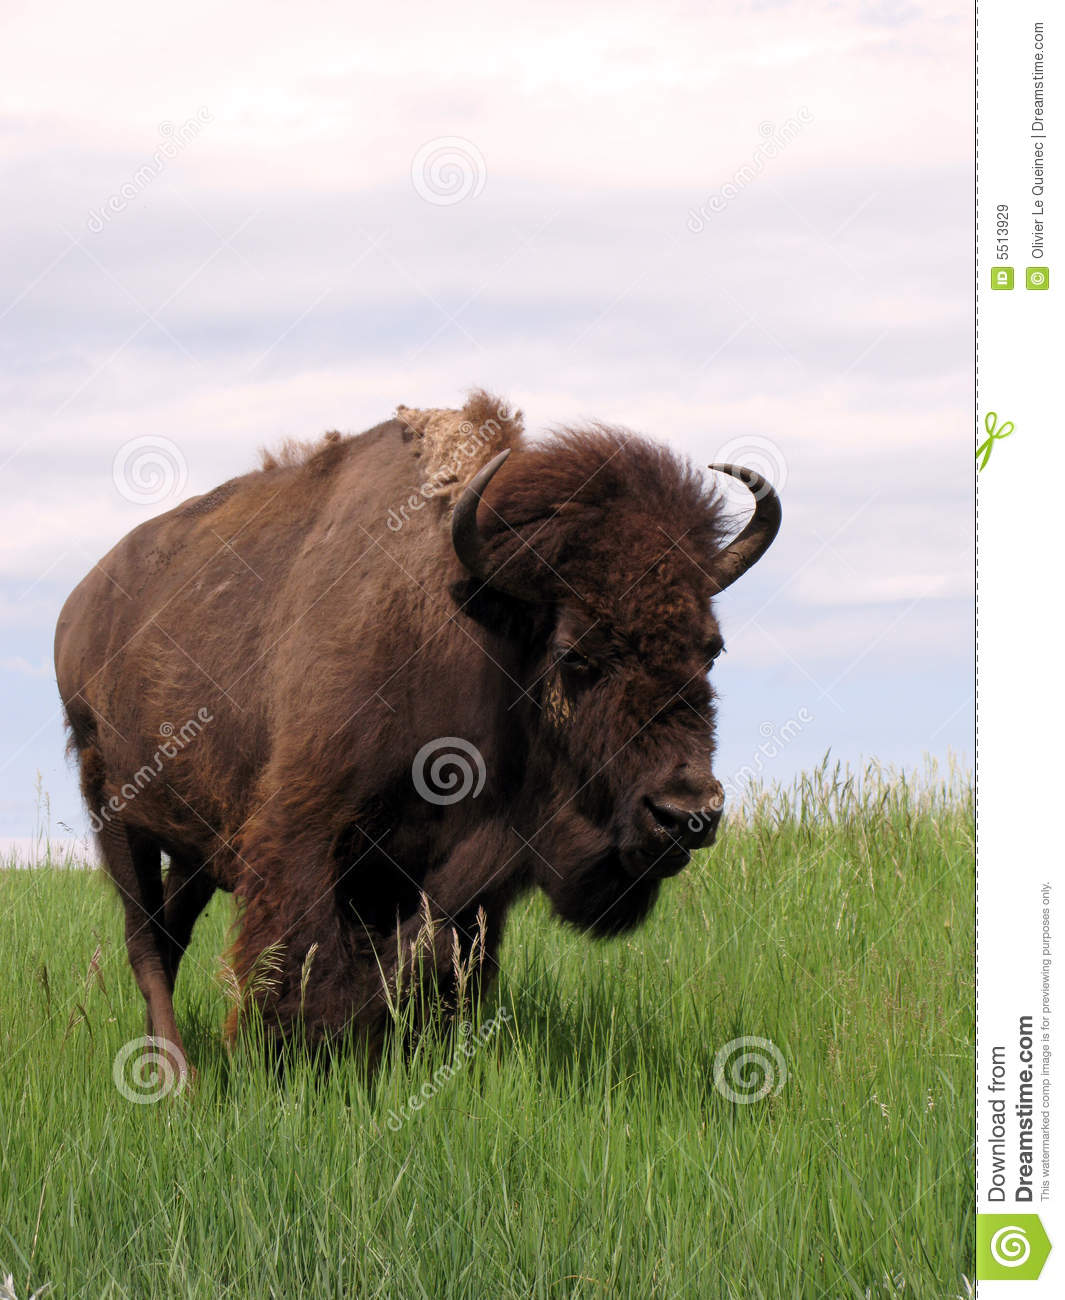 Male Bison Bull on the American West Prairie Grass